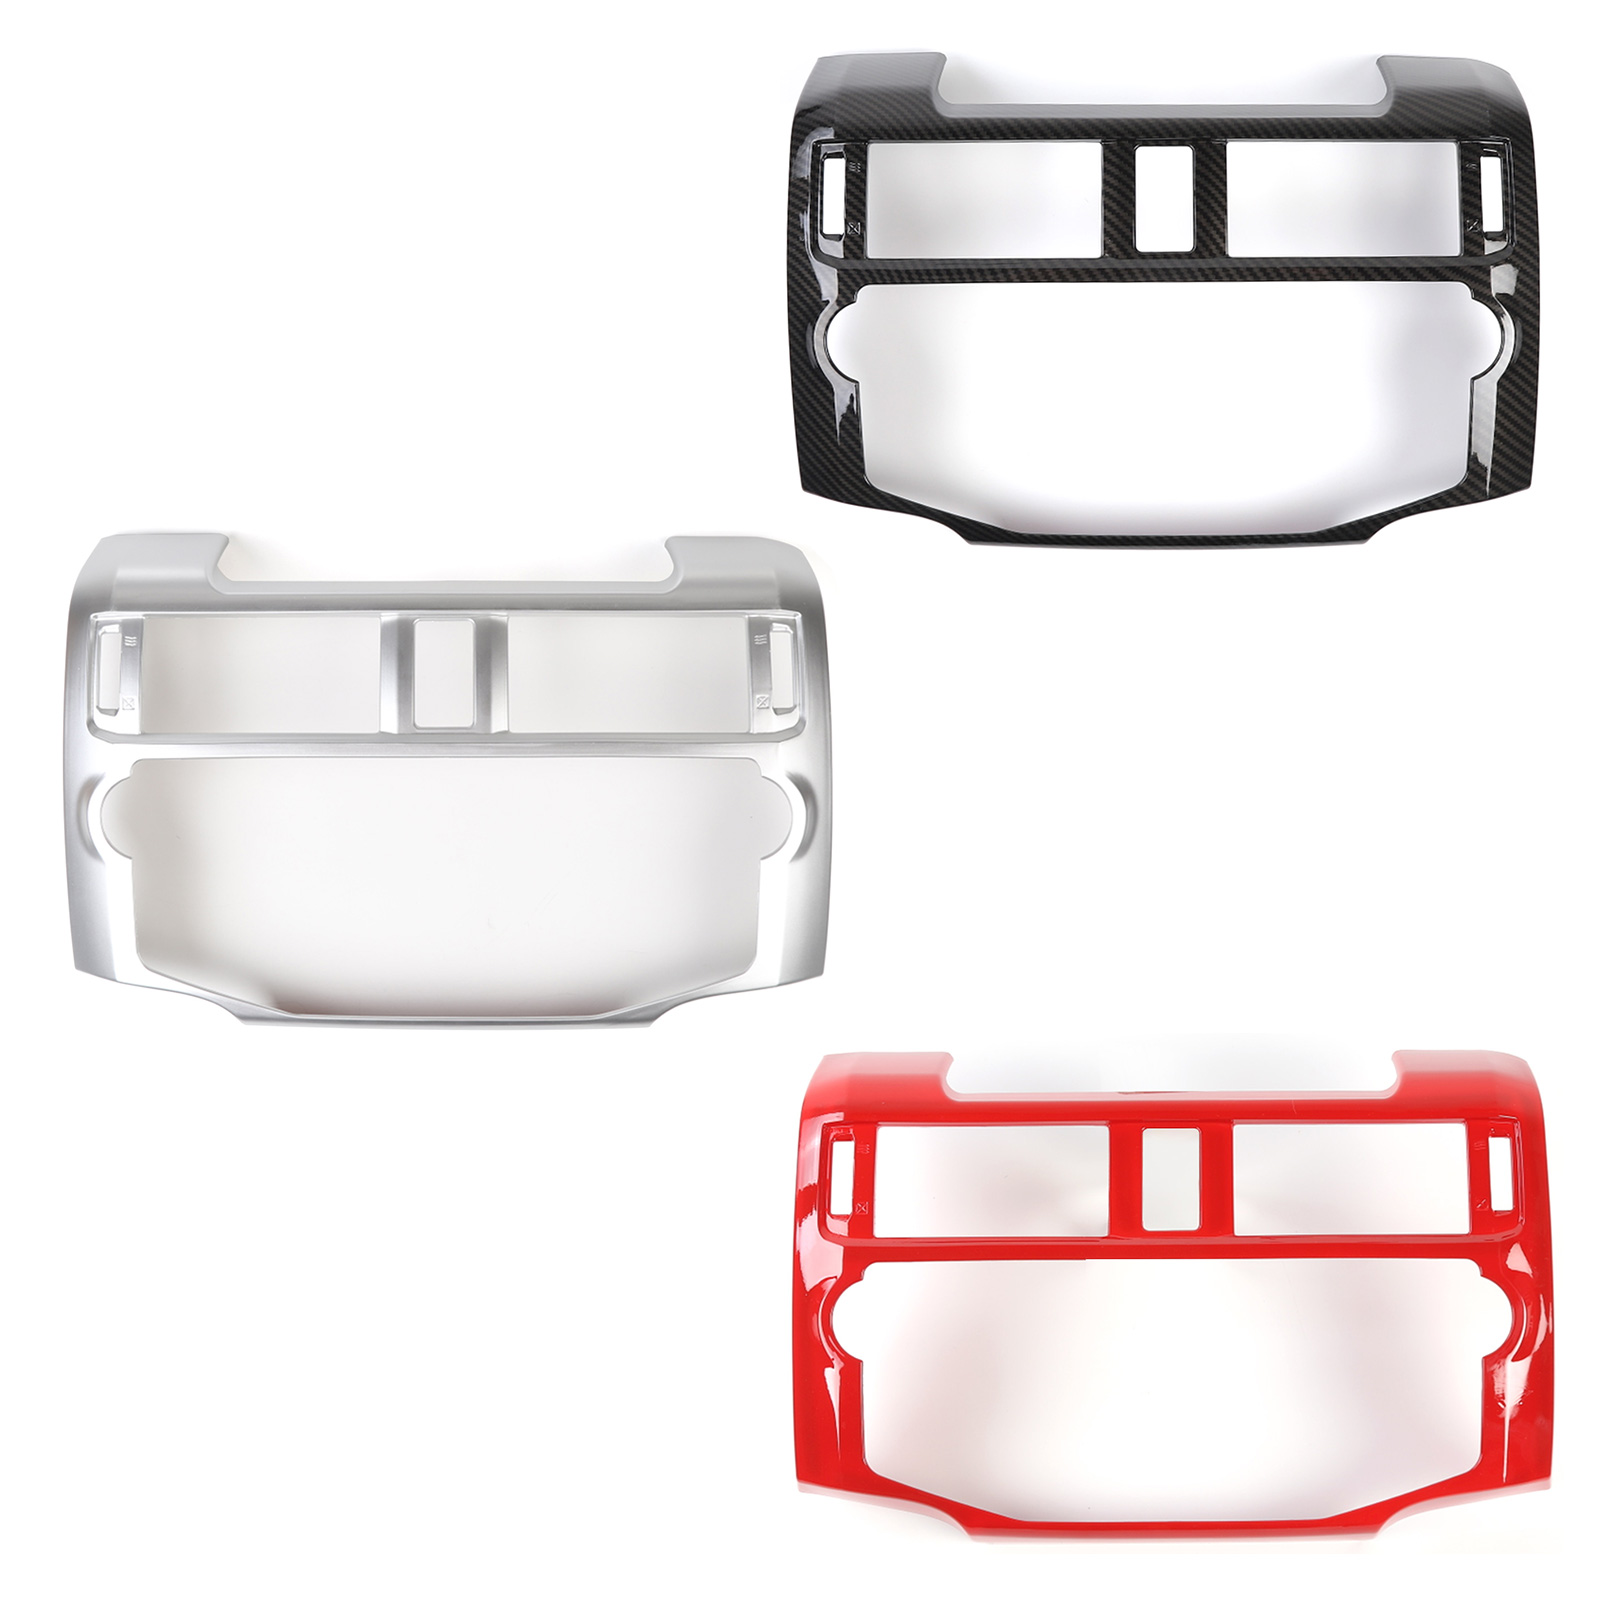 Areyourshop Central Control Navigation Panel Trim Cover For <font><b>4Runner</b></font> <font><b>2010</b></font>+ Central Control Frame Trim Cover Car Auto Parts image